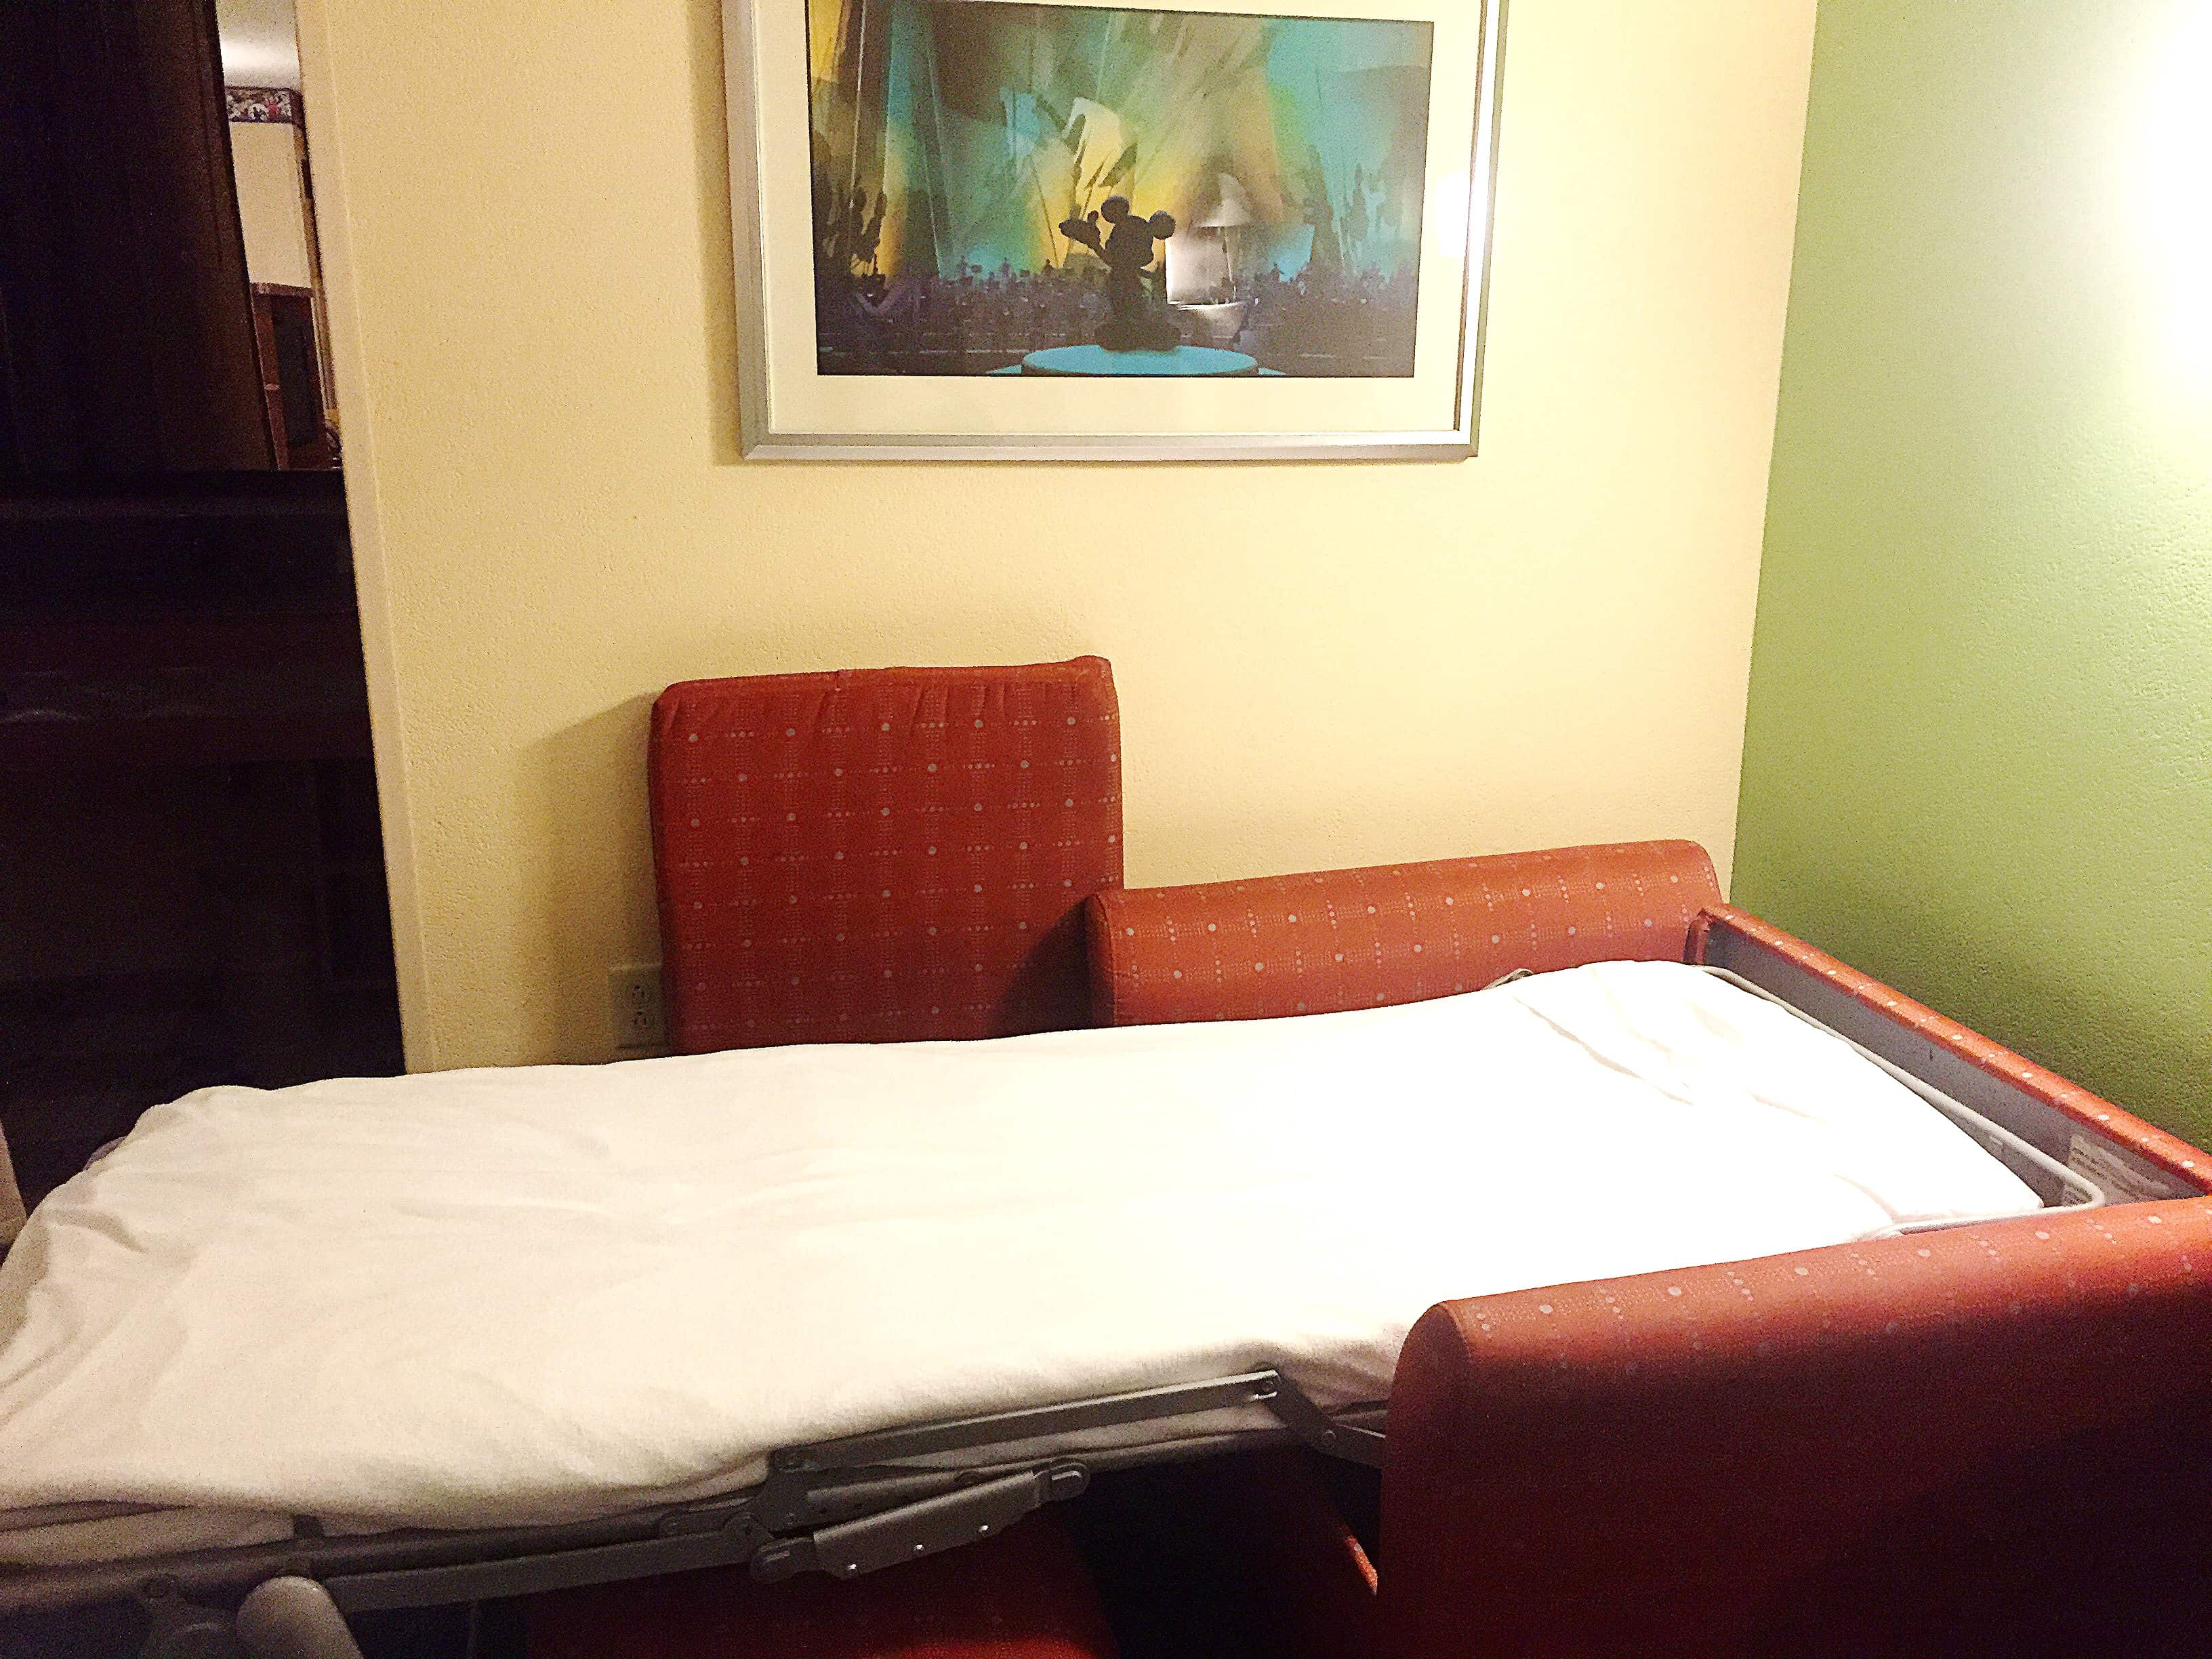 A view of the chair sleeper in an All-Star Music Disney Family Suite